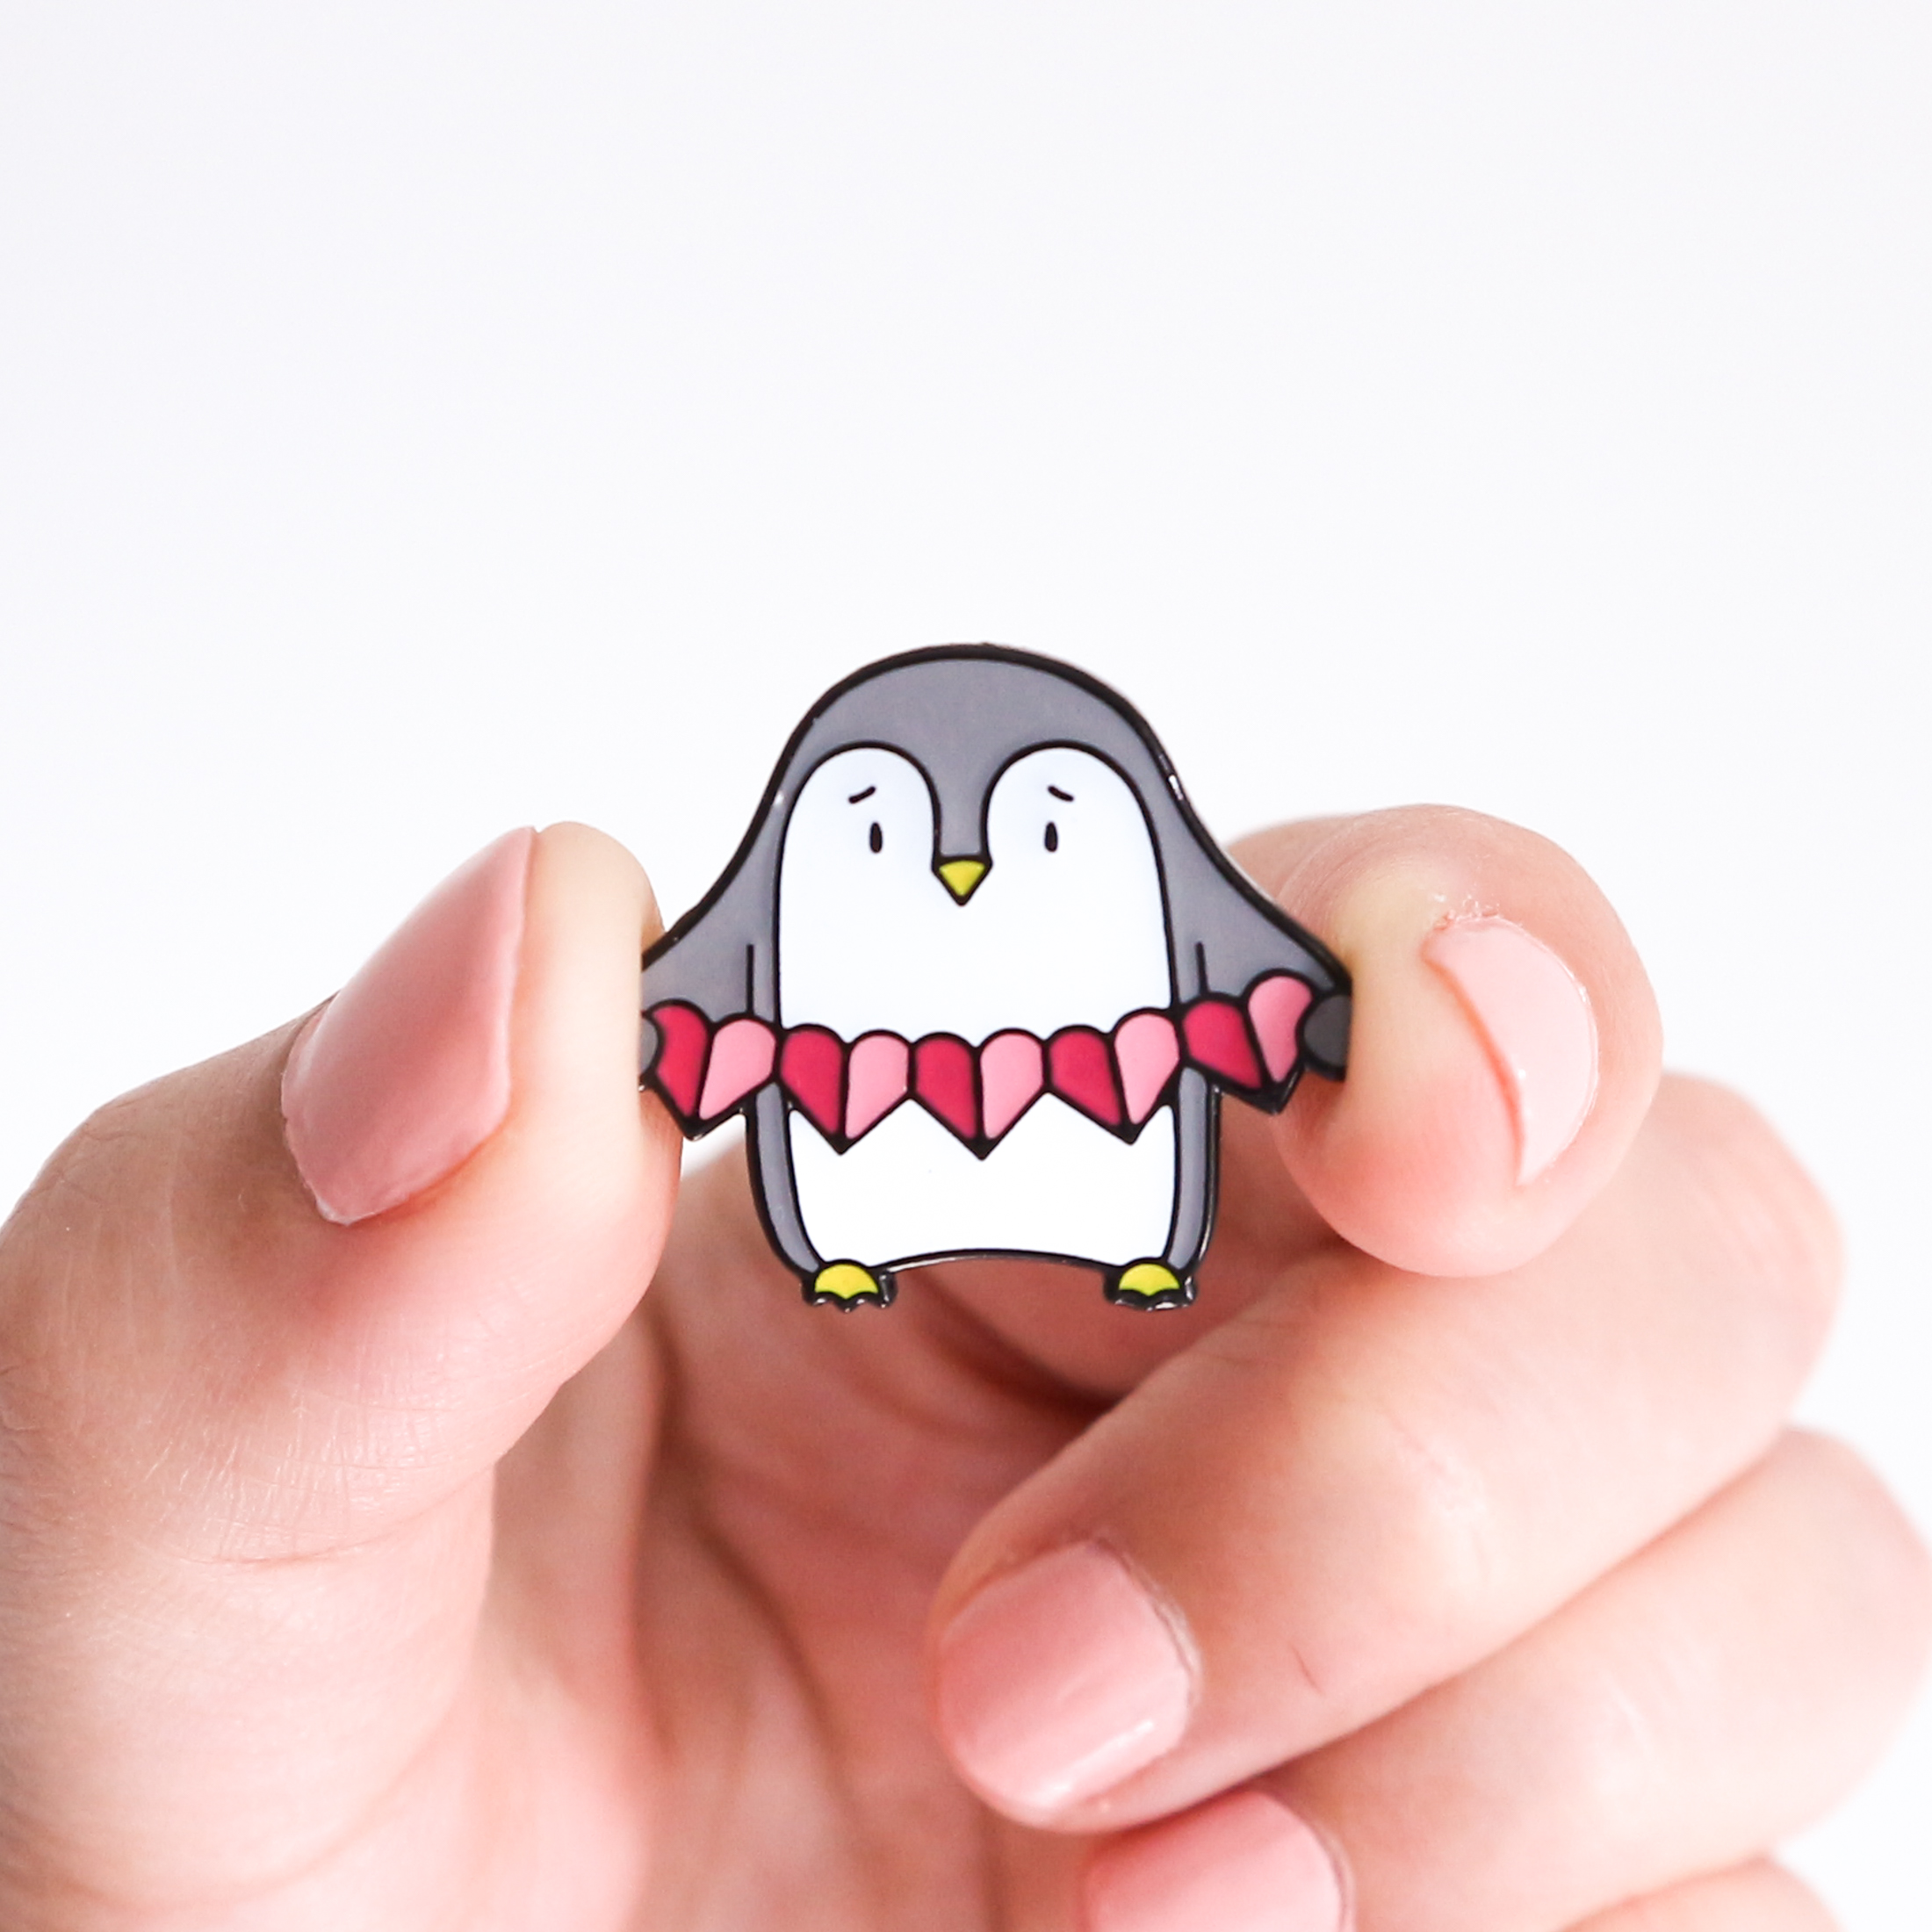 Photo of a hand holding a penguin enamel pin. The pin design shows a cute penguin holding a pink heart garland.